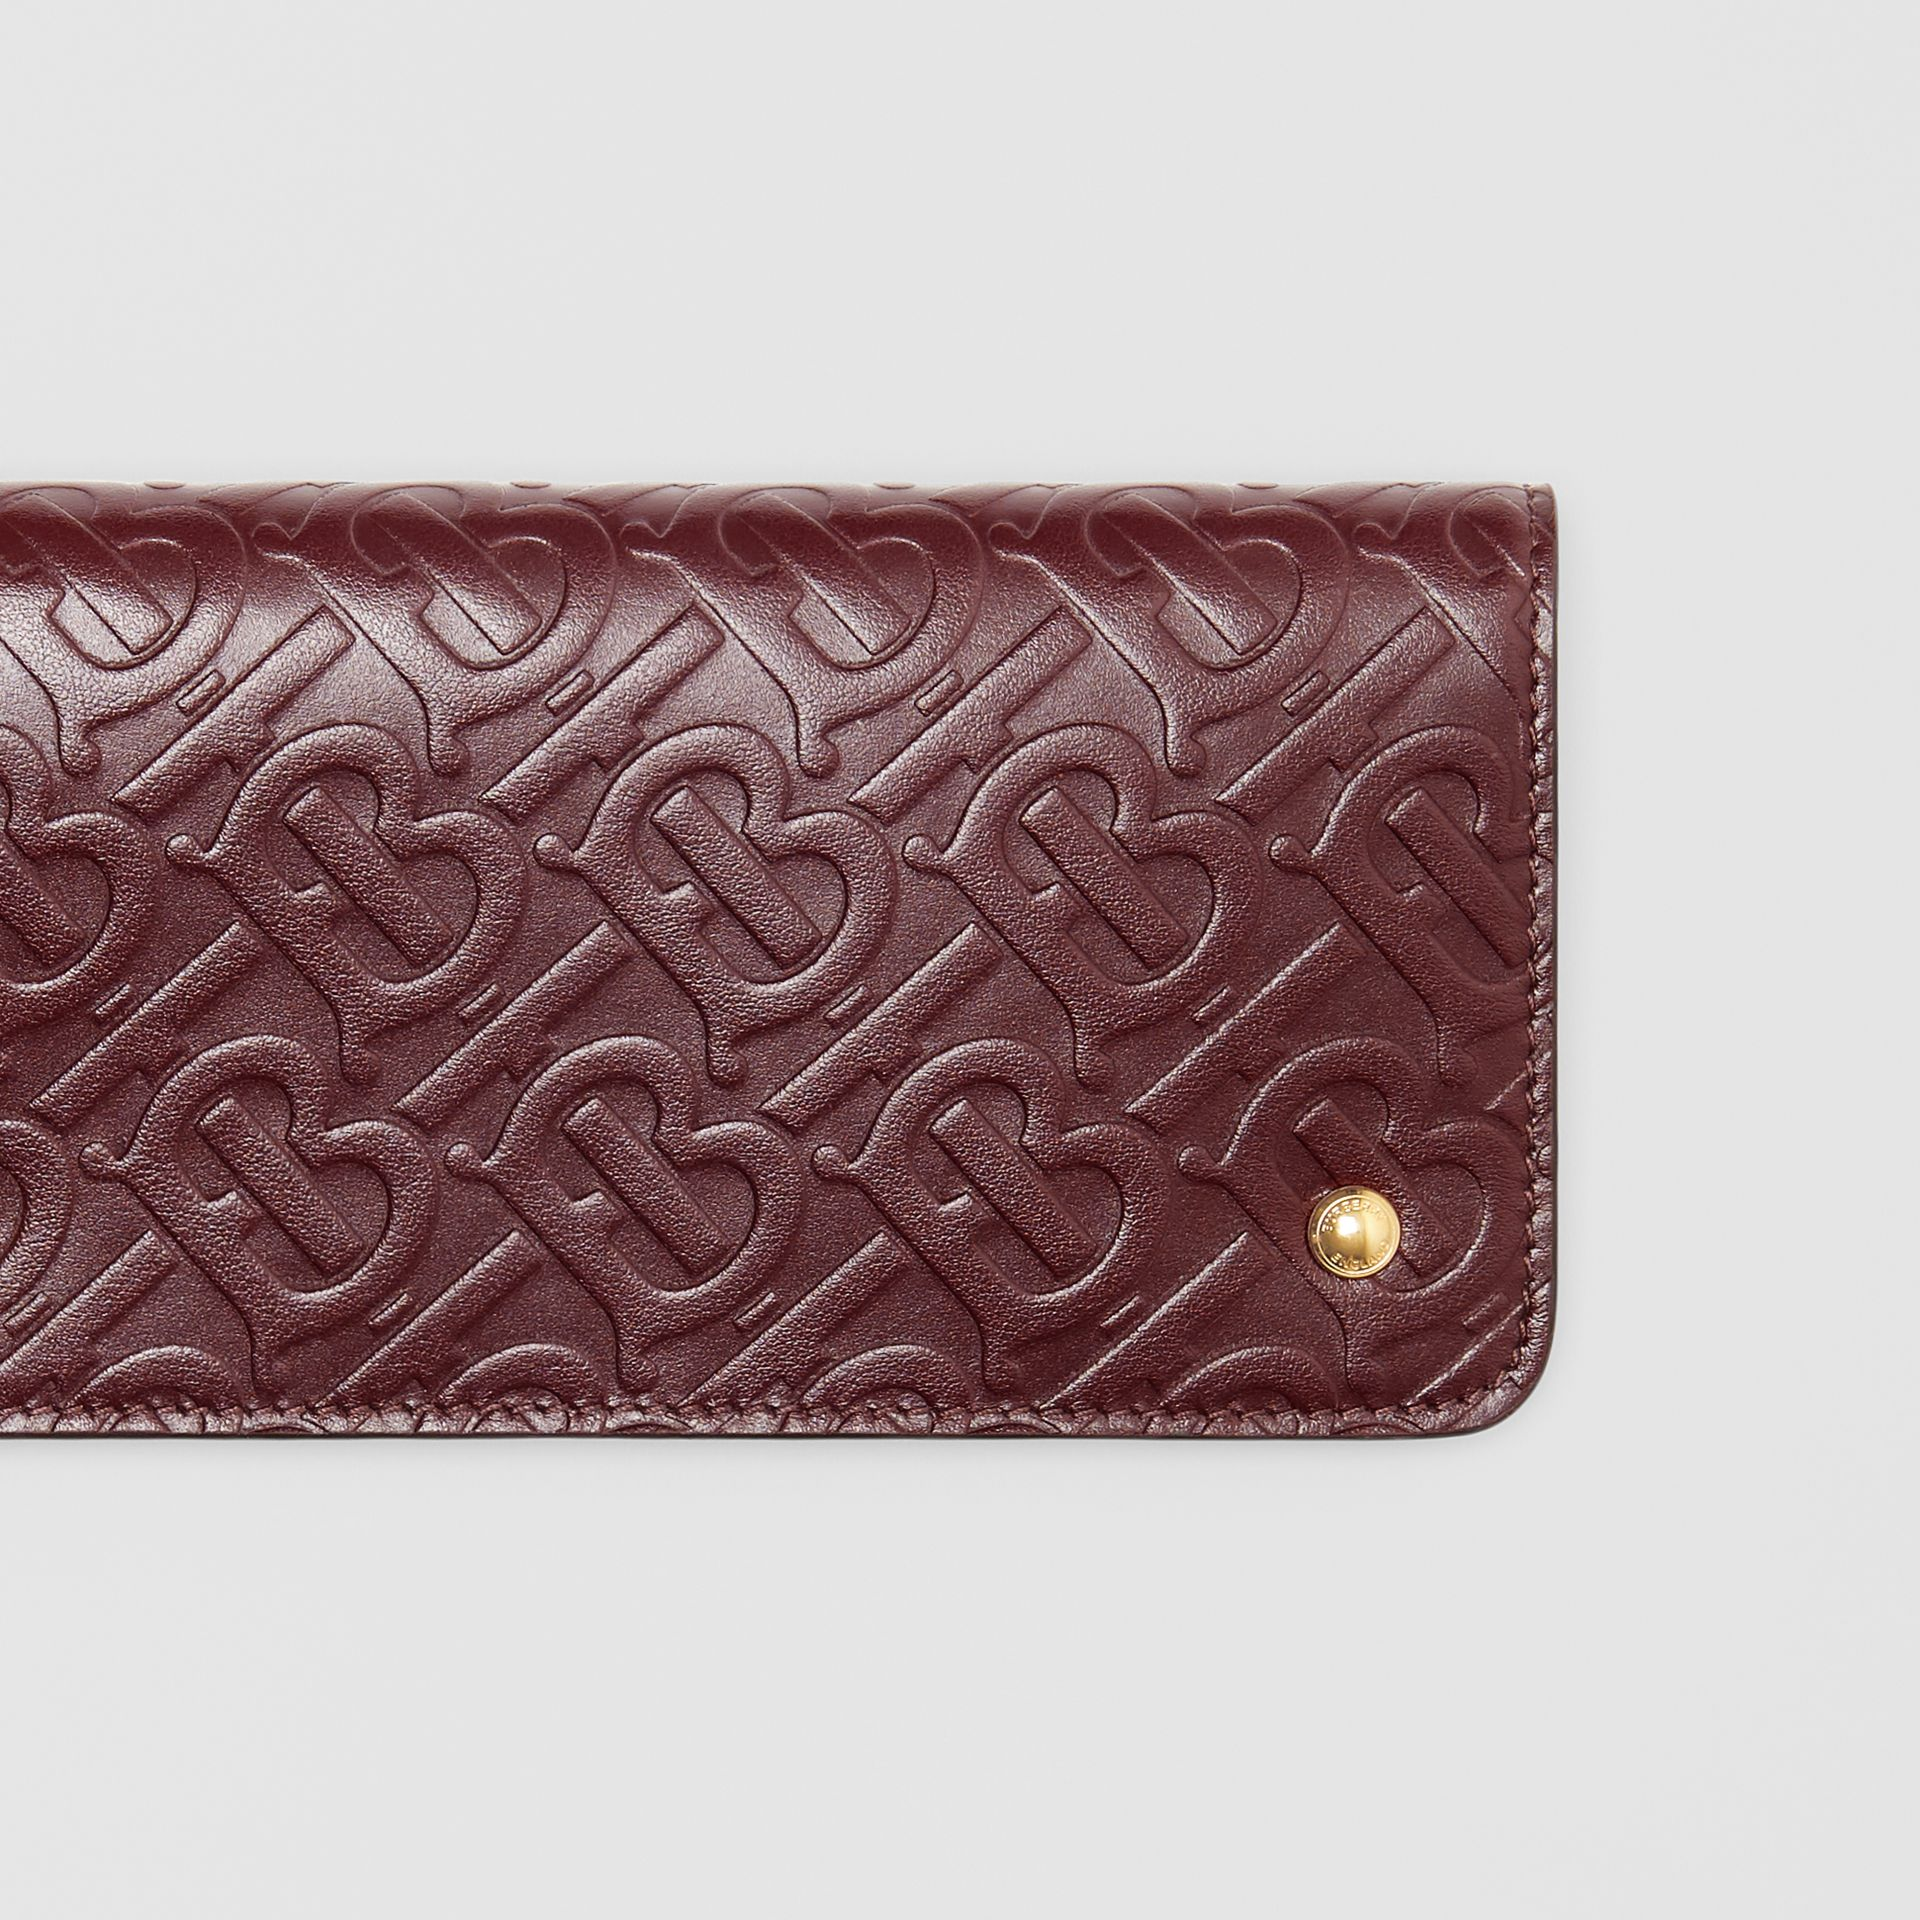 Monogram Leather Phone Wallet in Oxblood - Women | Burberry United Kingdom - gallery image 1